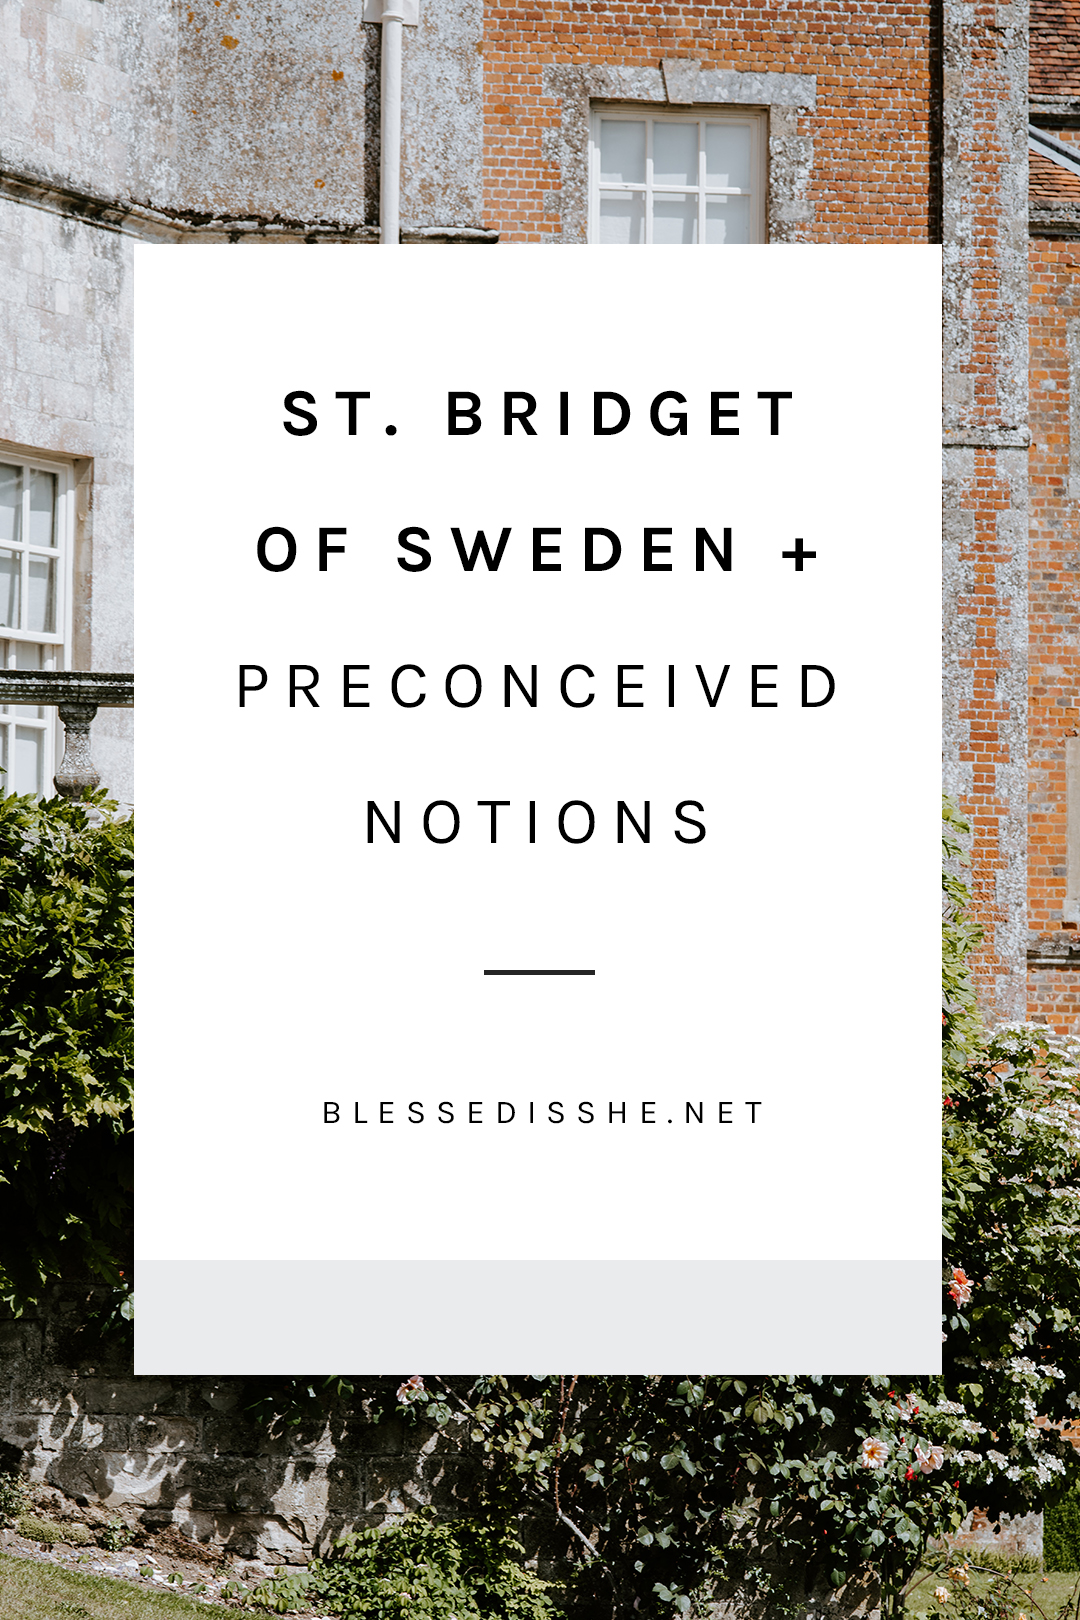 st. bridget of sweden feast day